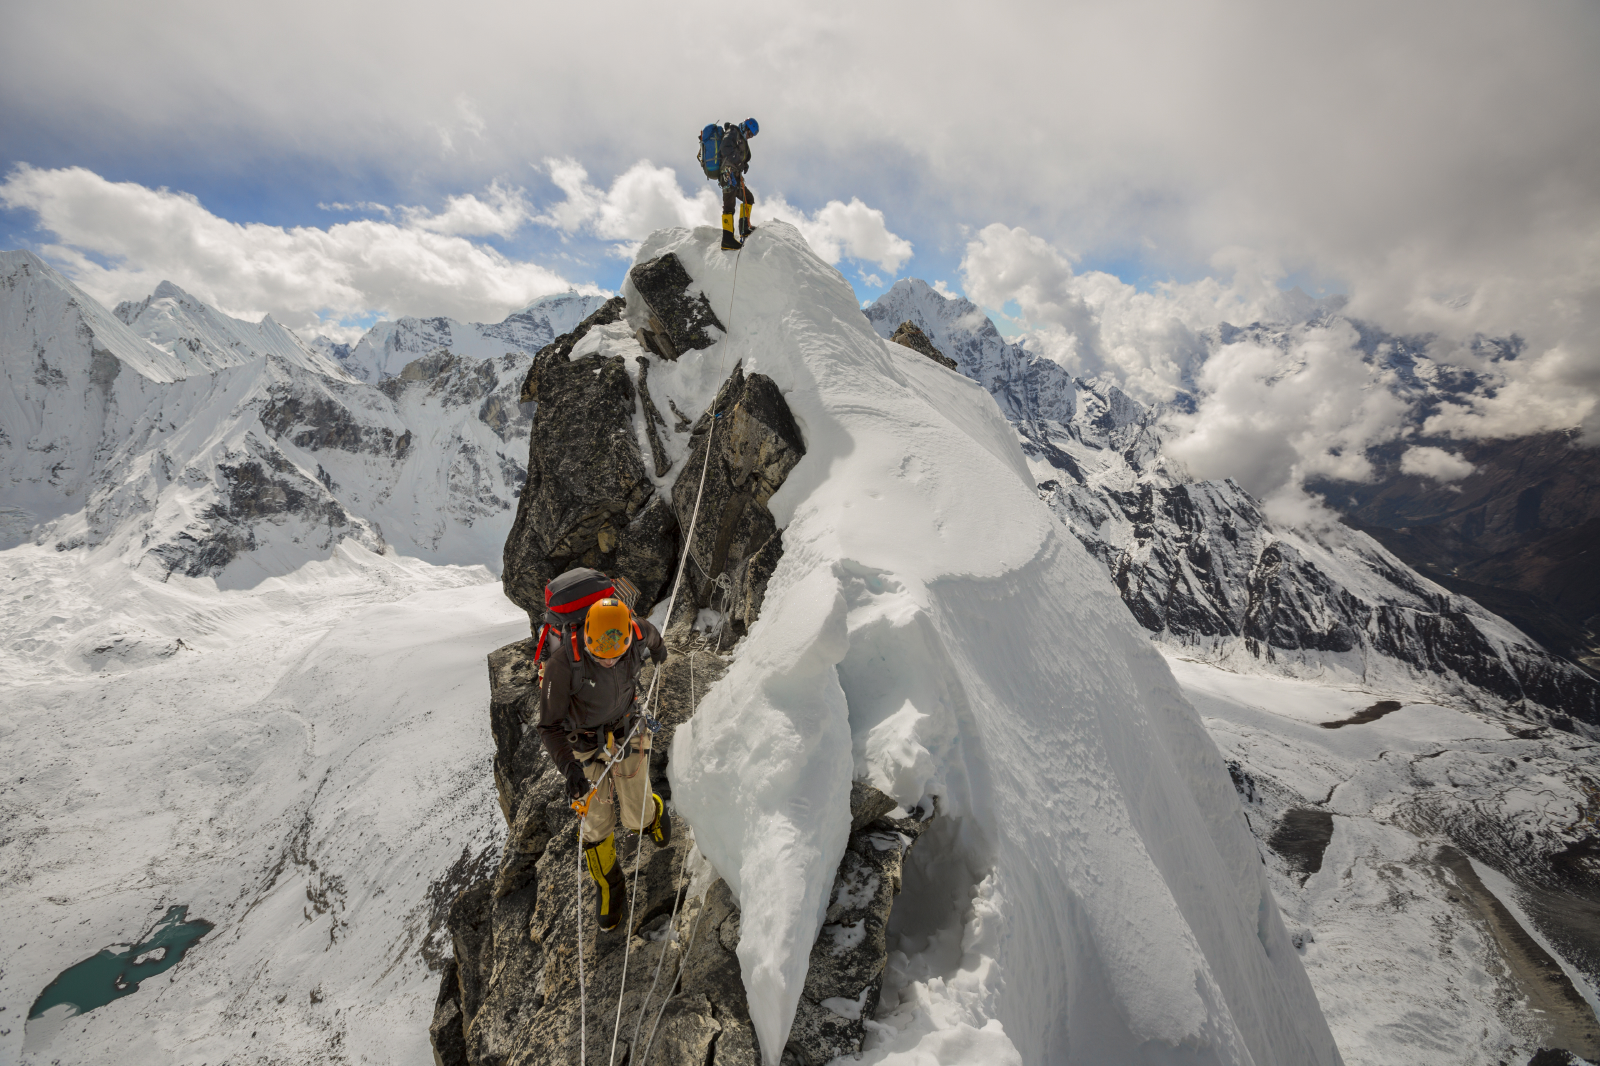 Danuru (orange helmet) and Panuru Sherpa move between camp 1 and Camp 2 at the top of teh Yellow Tower on Ama Dablam on fixed lines